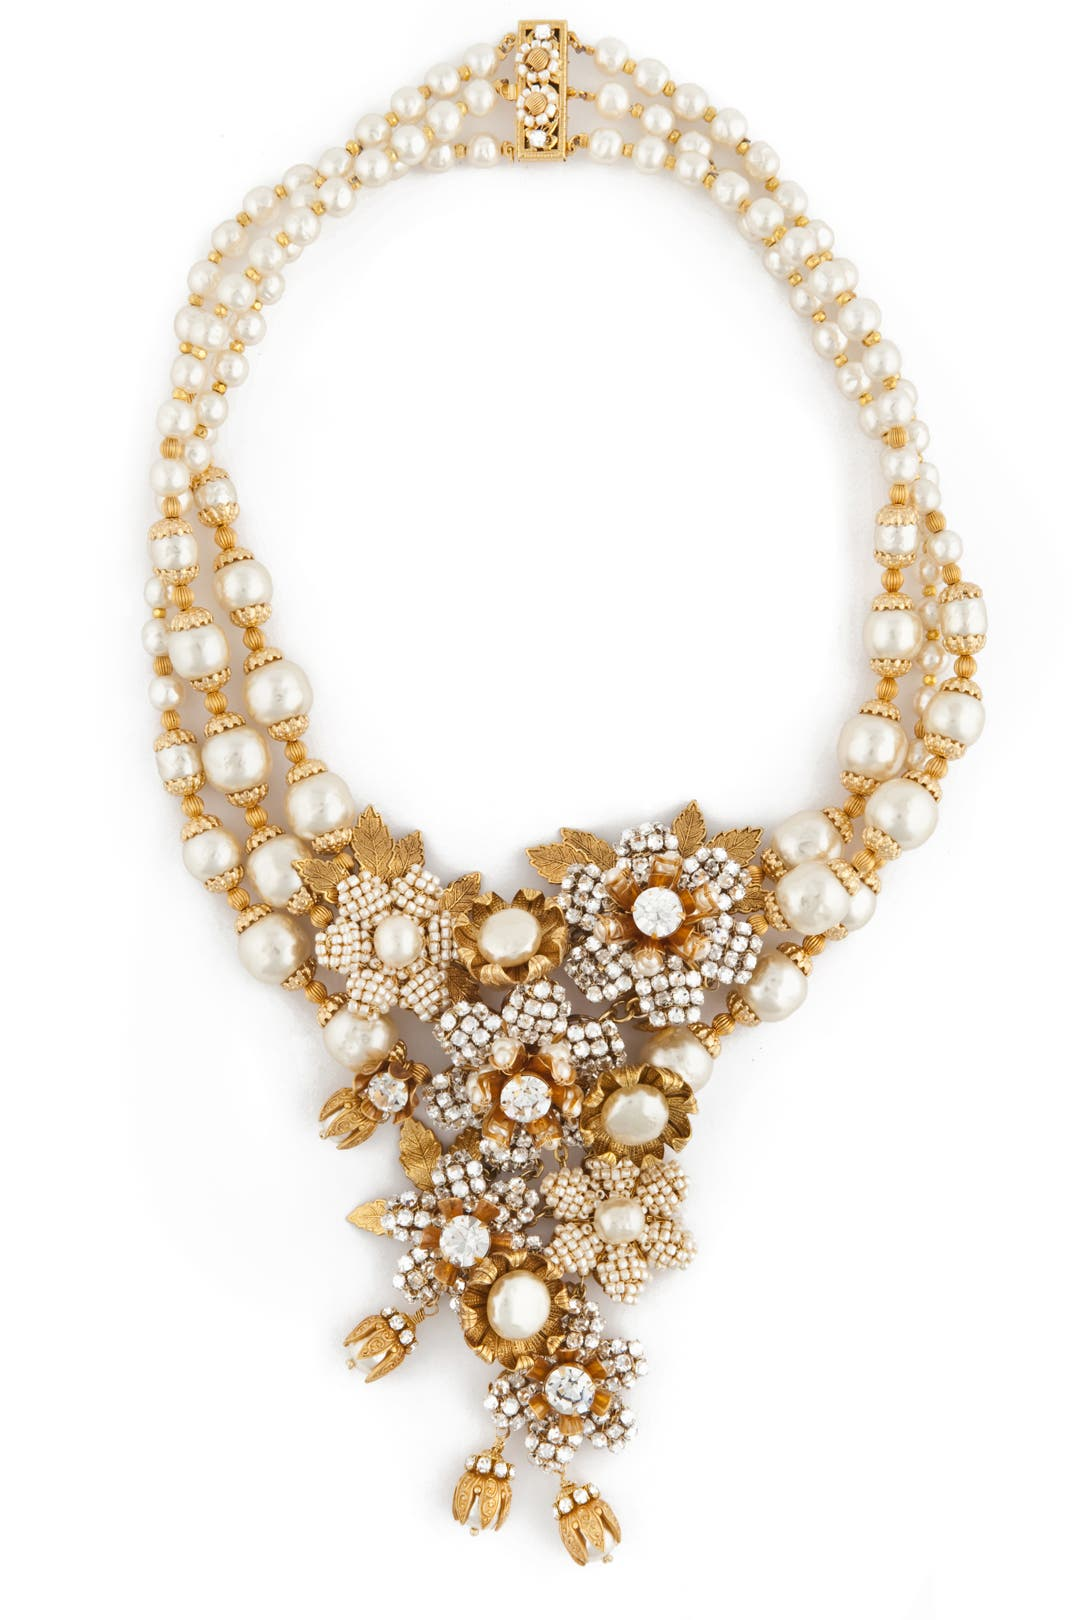 Calla Lily Cluster Necklace by Miriam Haskell